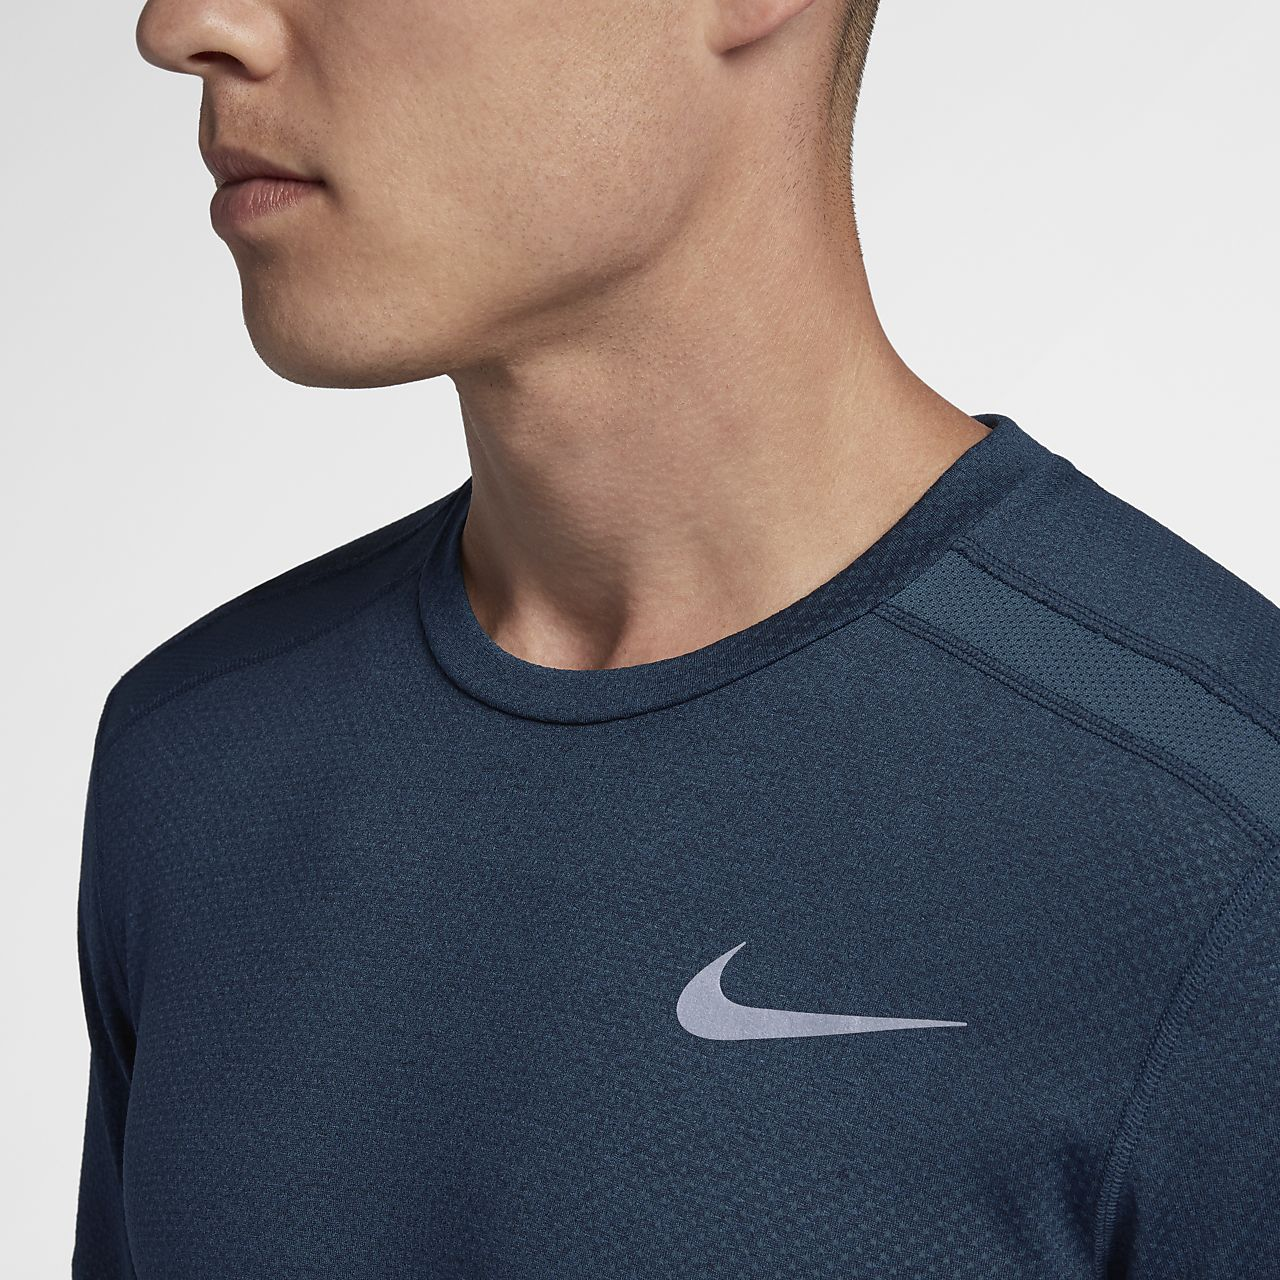 ... Nike Dri-FIT Miler Cool Men's Short-Sleeve Running Top